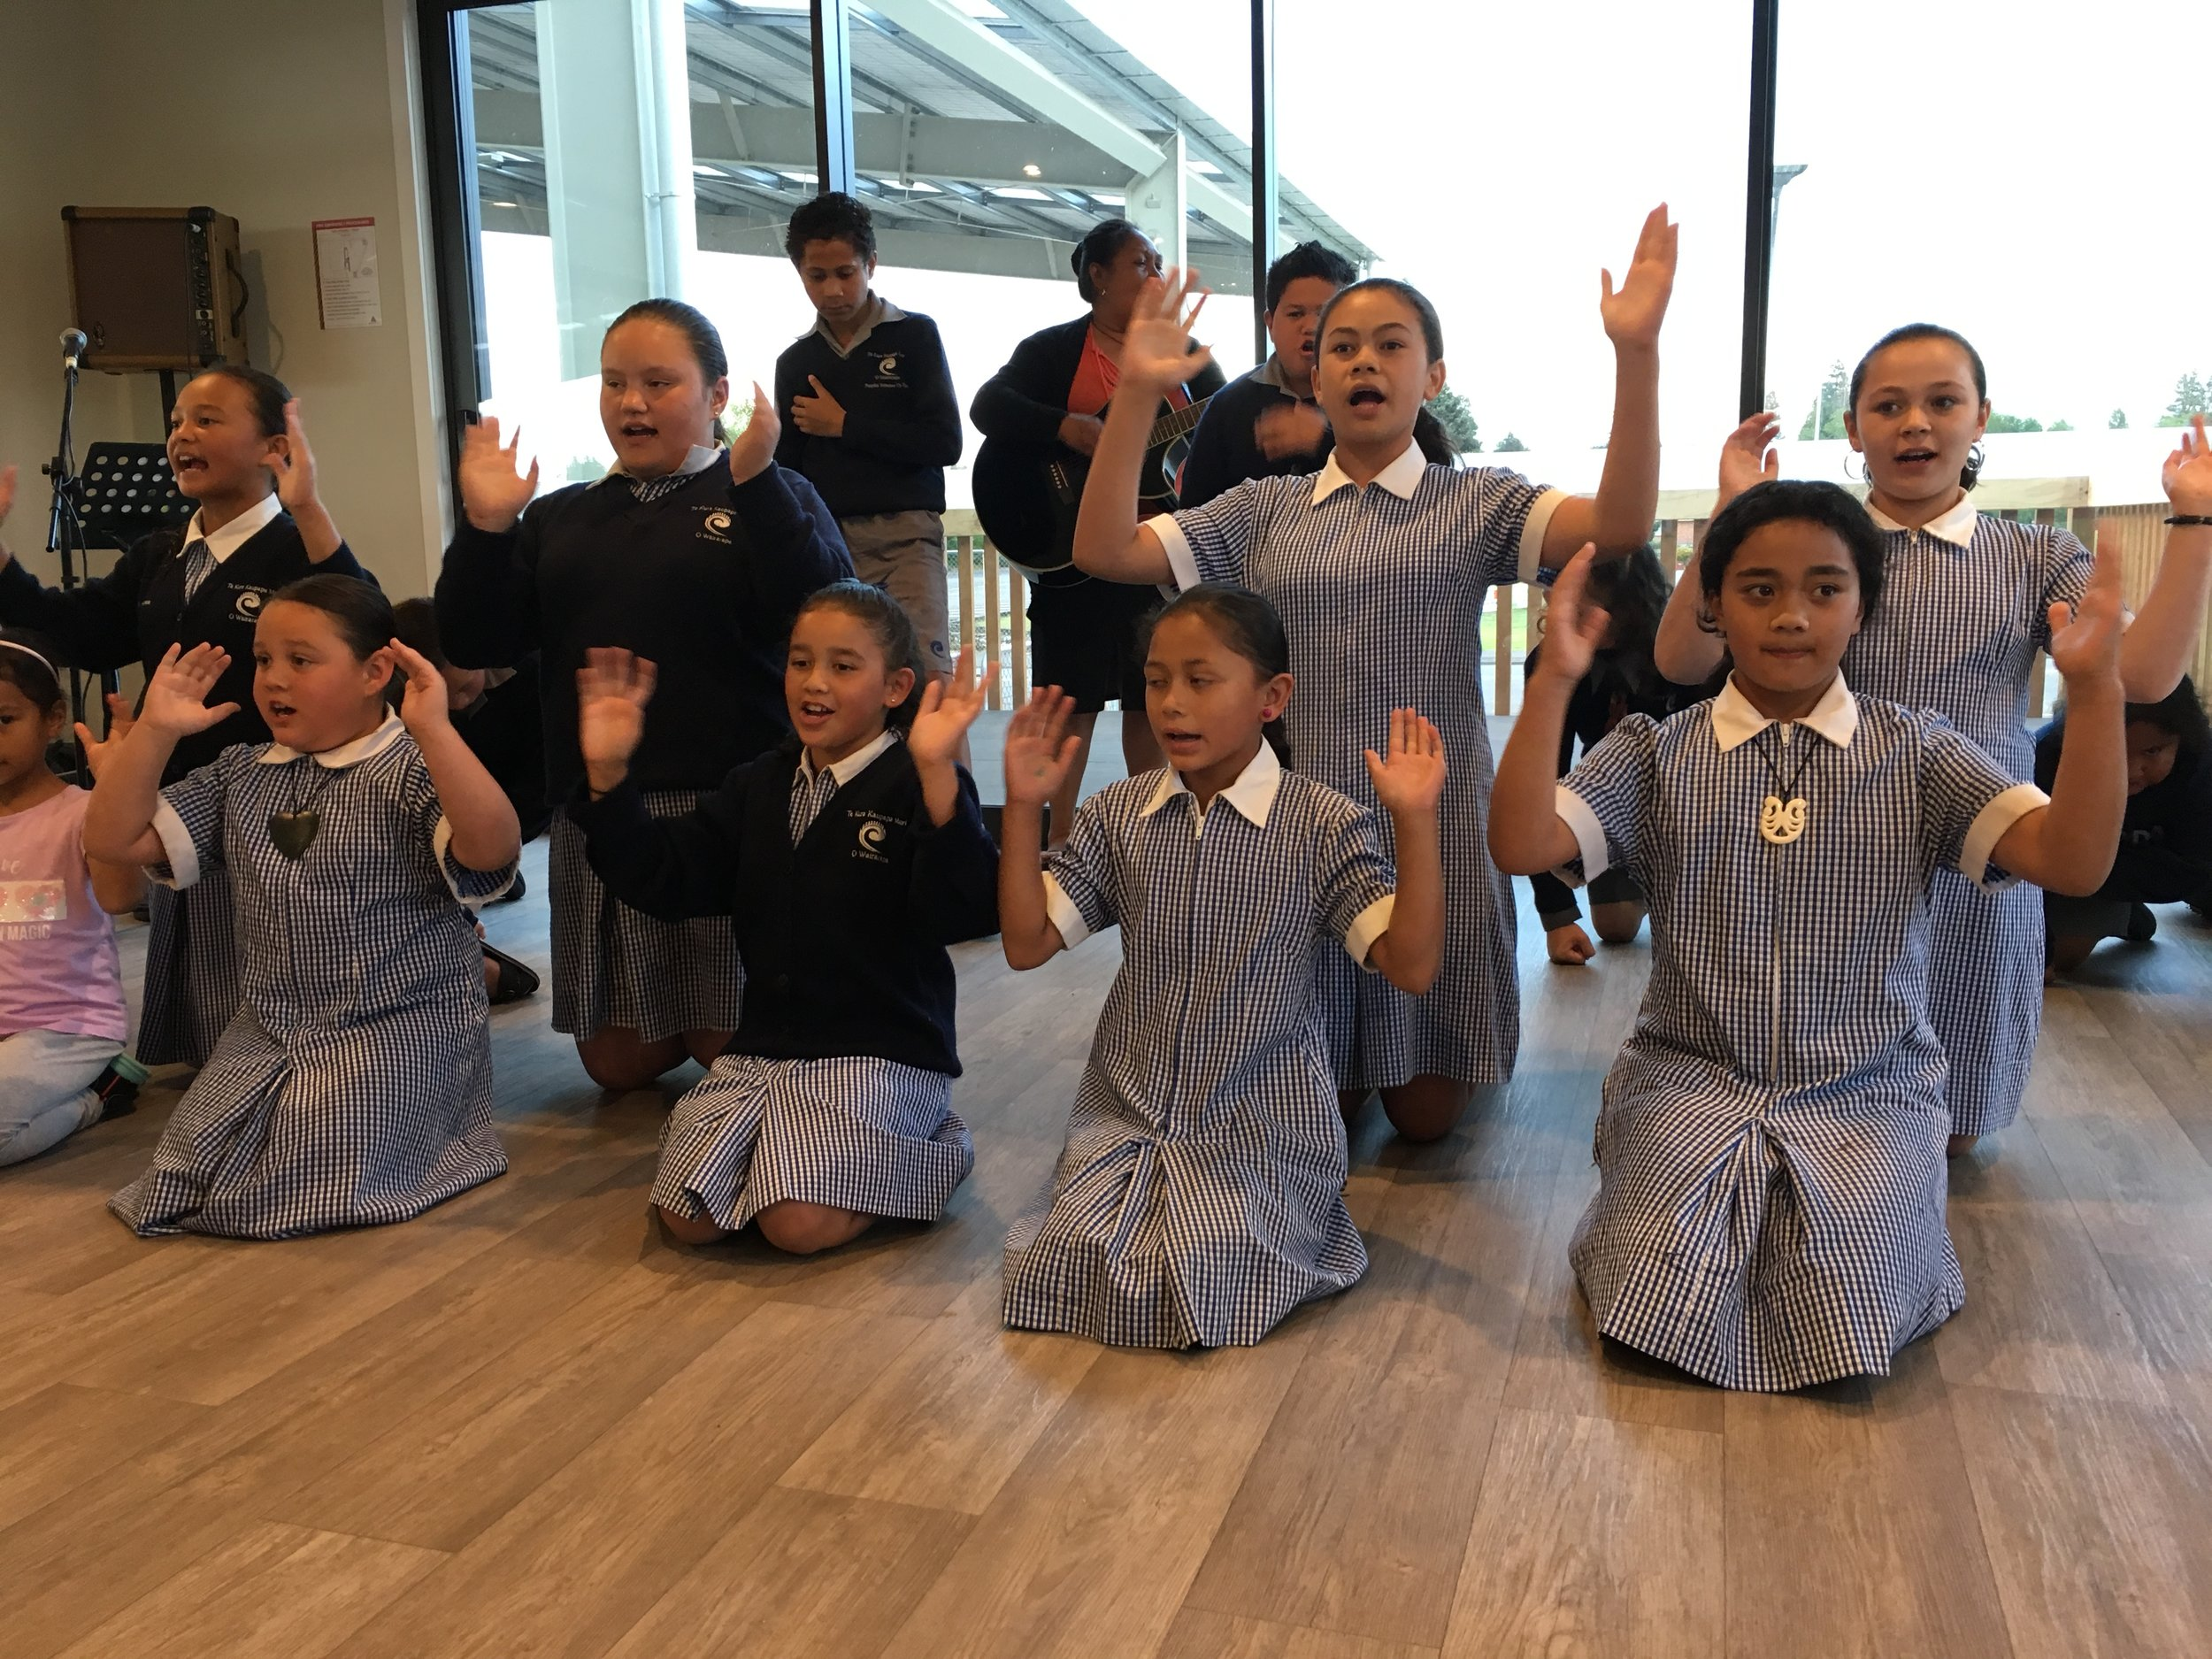 Masterton - A celebration for the Birth of Bahá'u'lláh in the evening included a hangi to which the kapahaka group and their families from the Kura were invited.